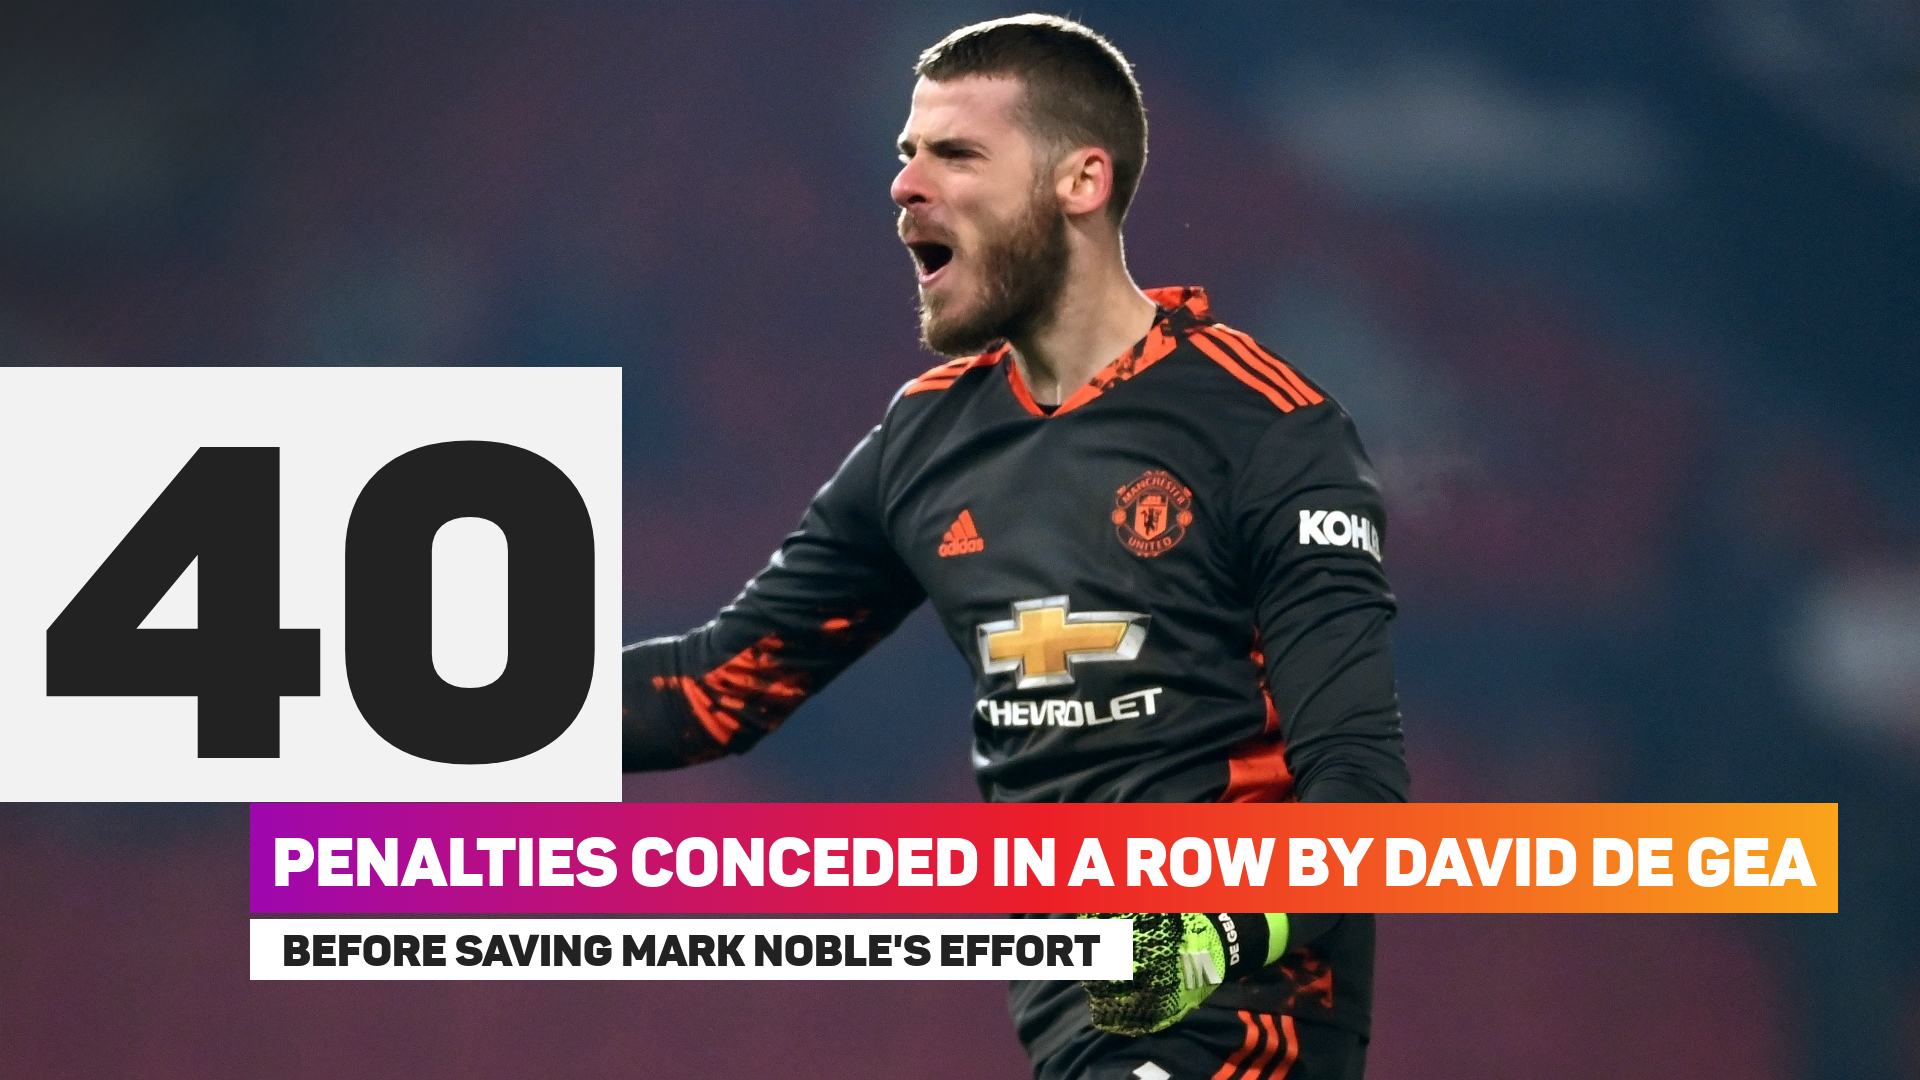 David de Gea saved his first penalty in 41 attempts